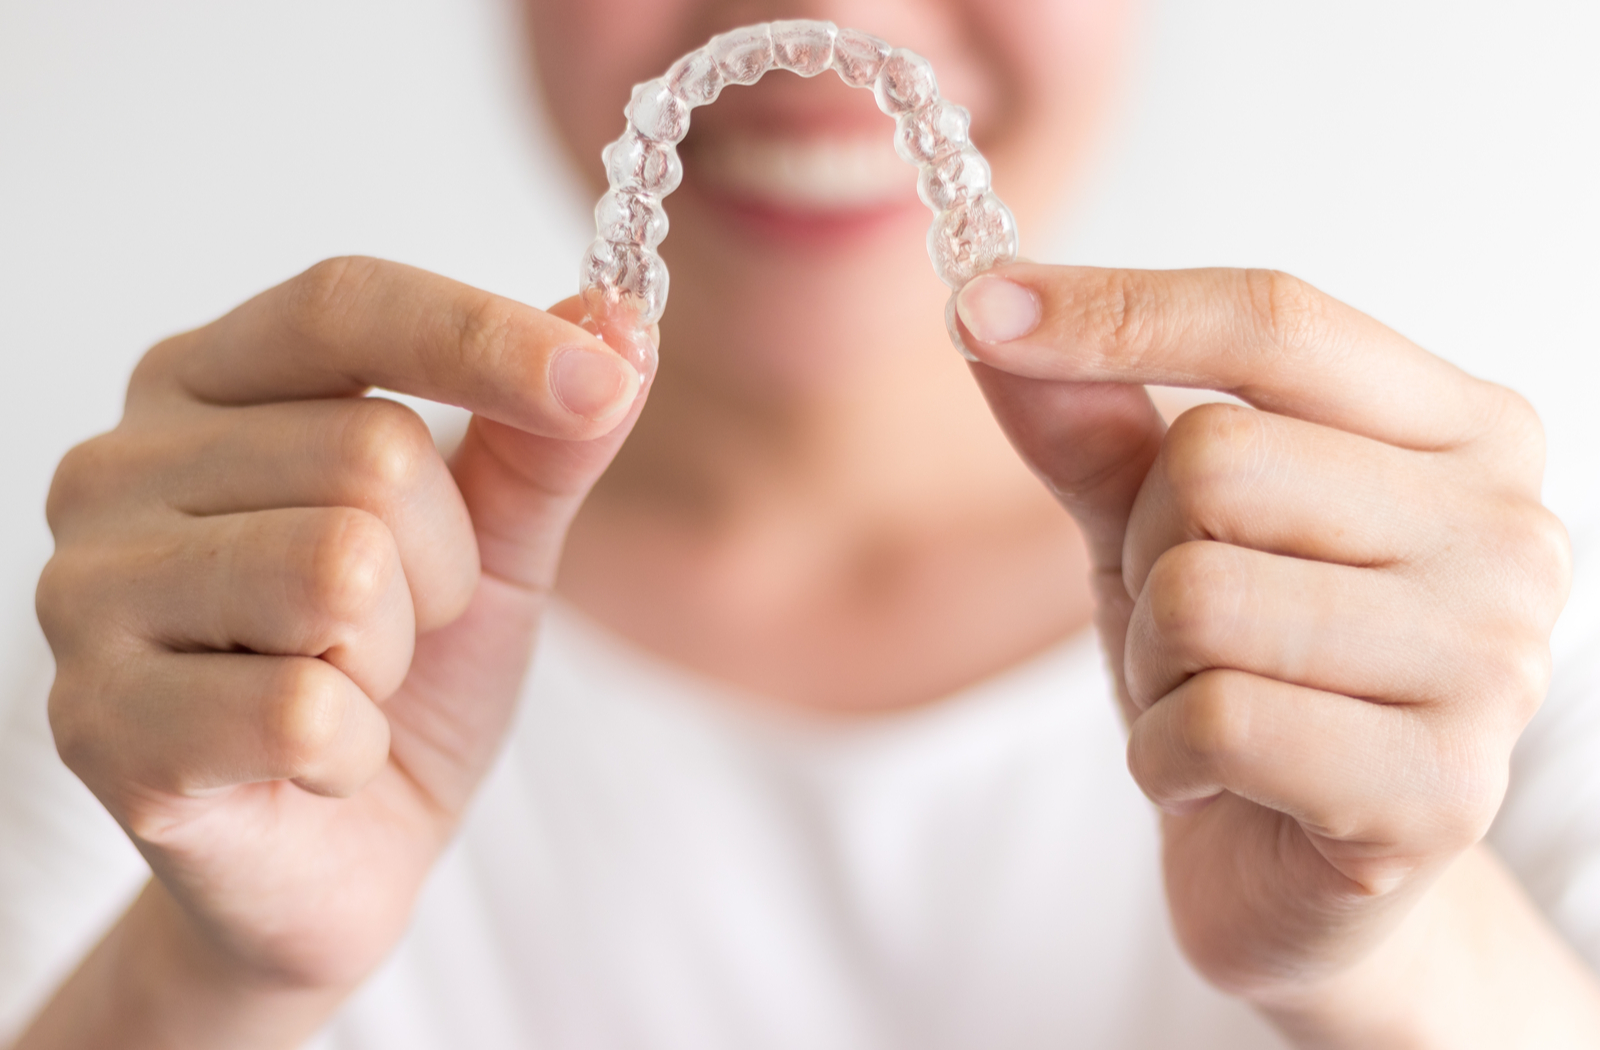 lady smiling out of focus holding a clear plastic aligner with both hands